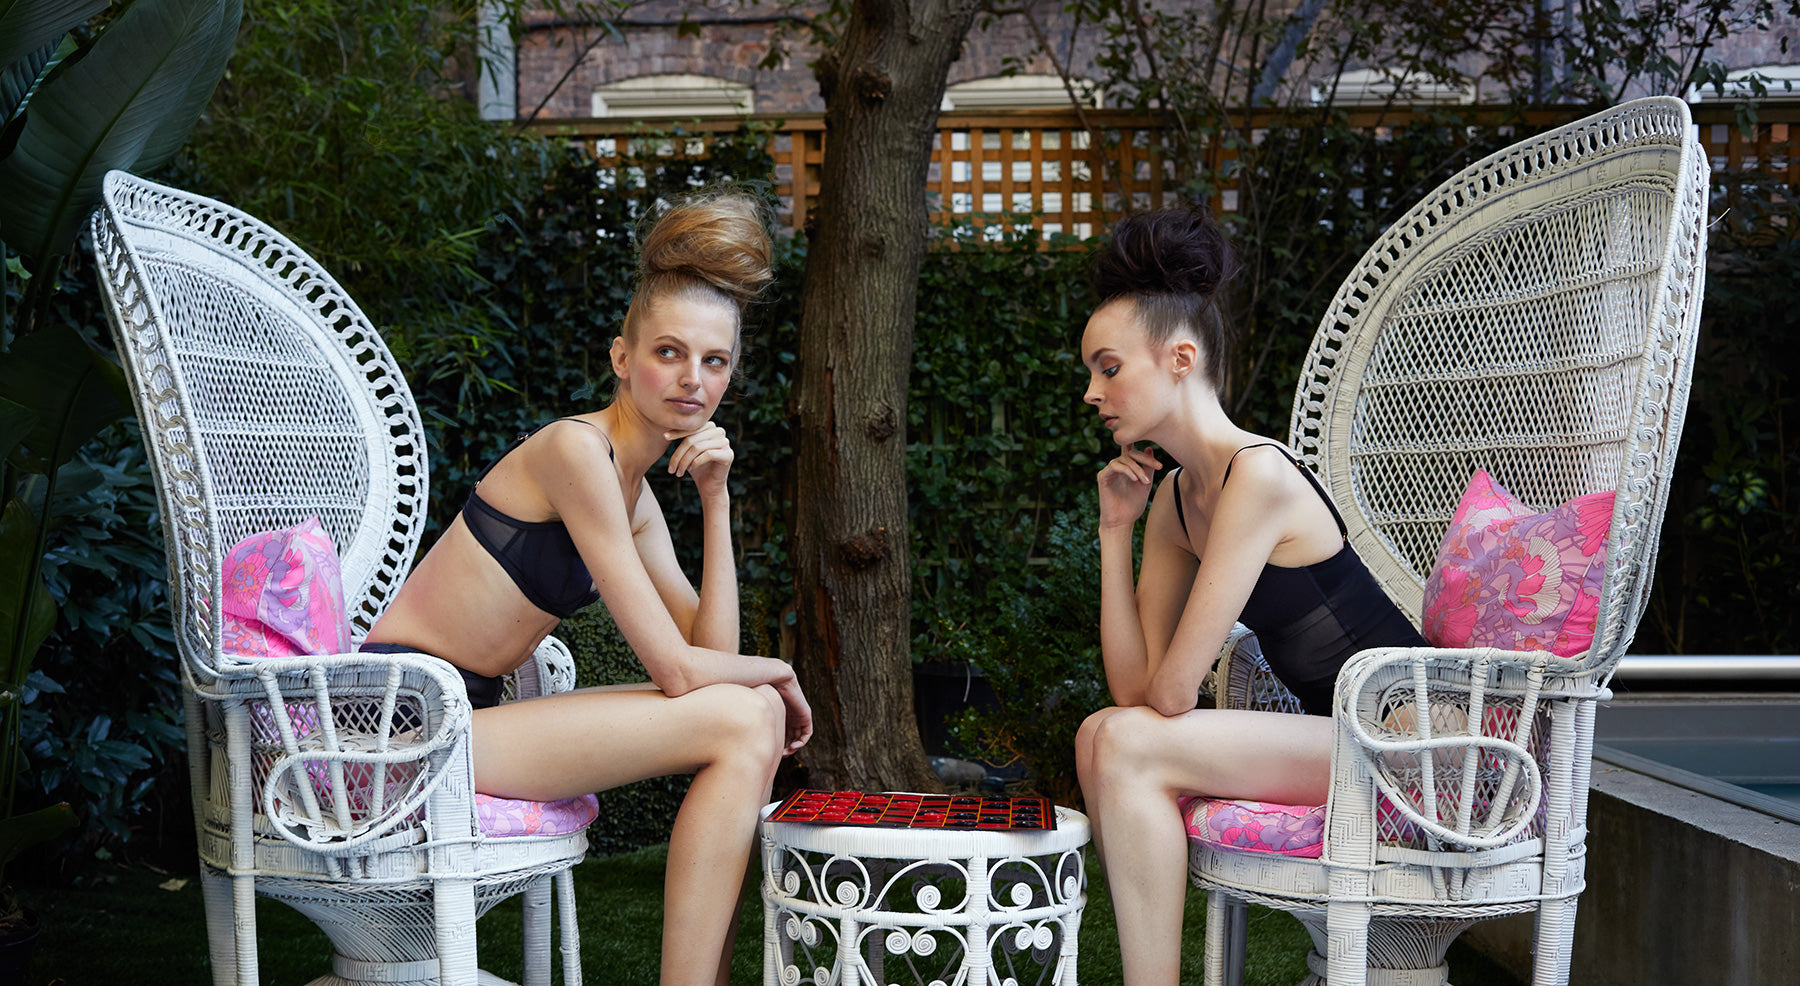 Lifestyle image of models playing checkers featuring the Lola bikini and one piece swimsuits with sheer mesh inserts.